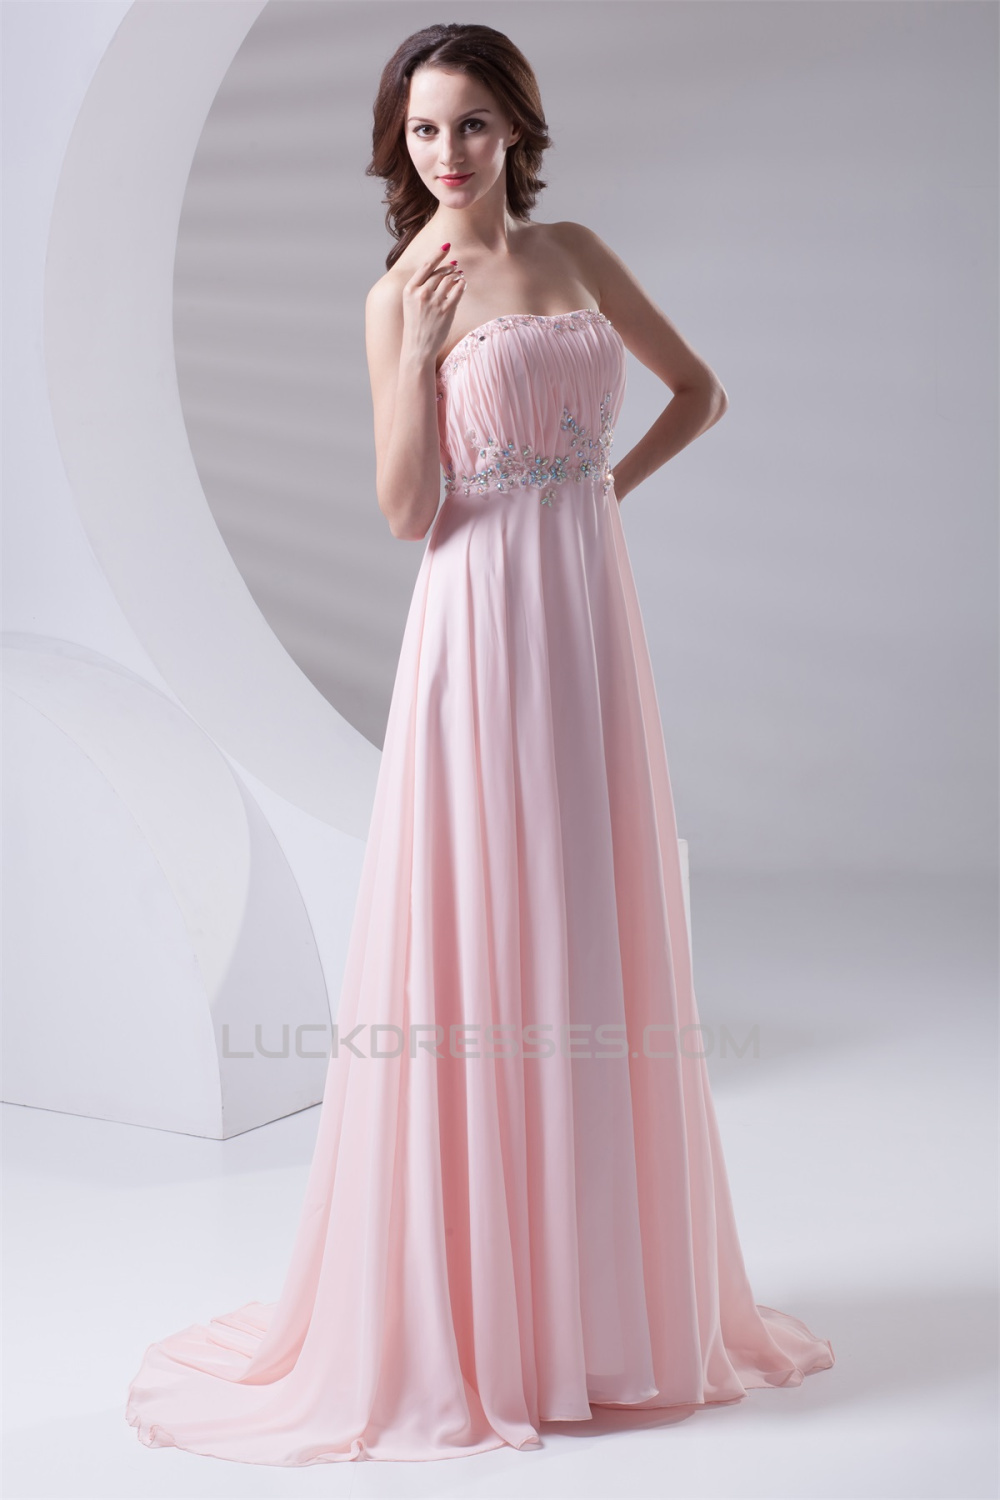 A-Line Strapless Beaded Long Pink Prom Evening Formal